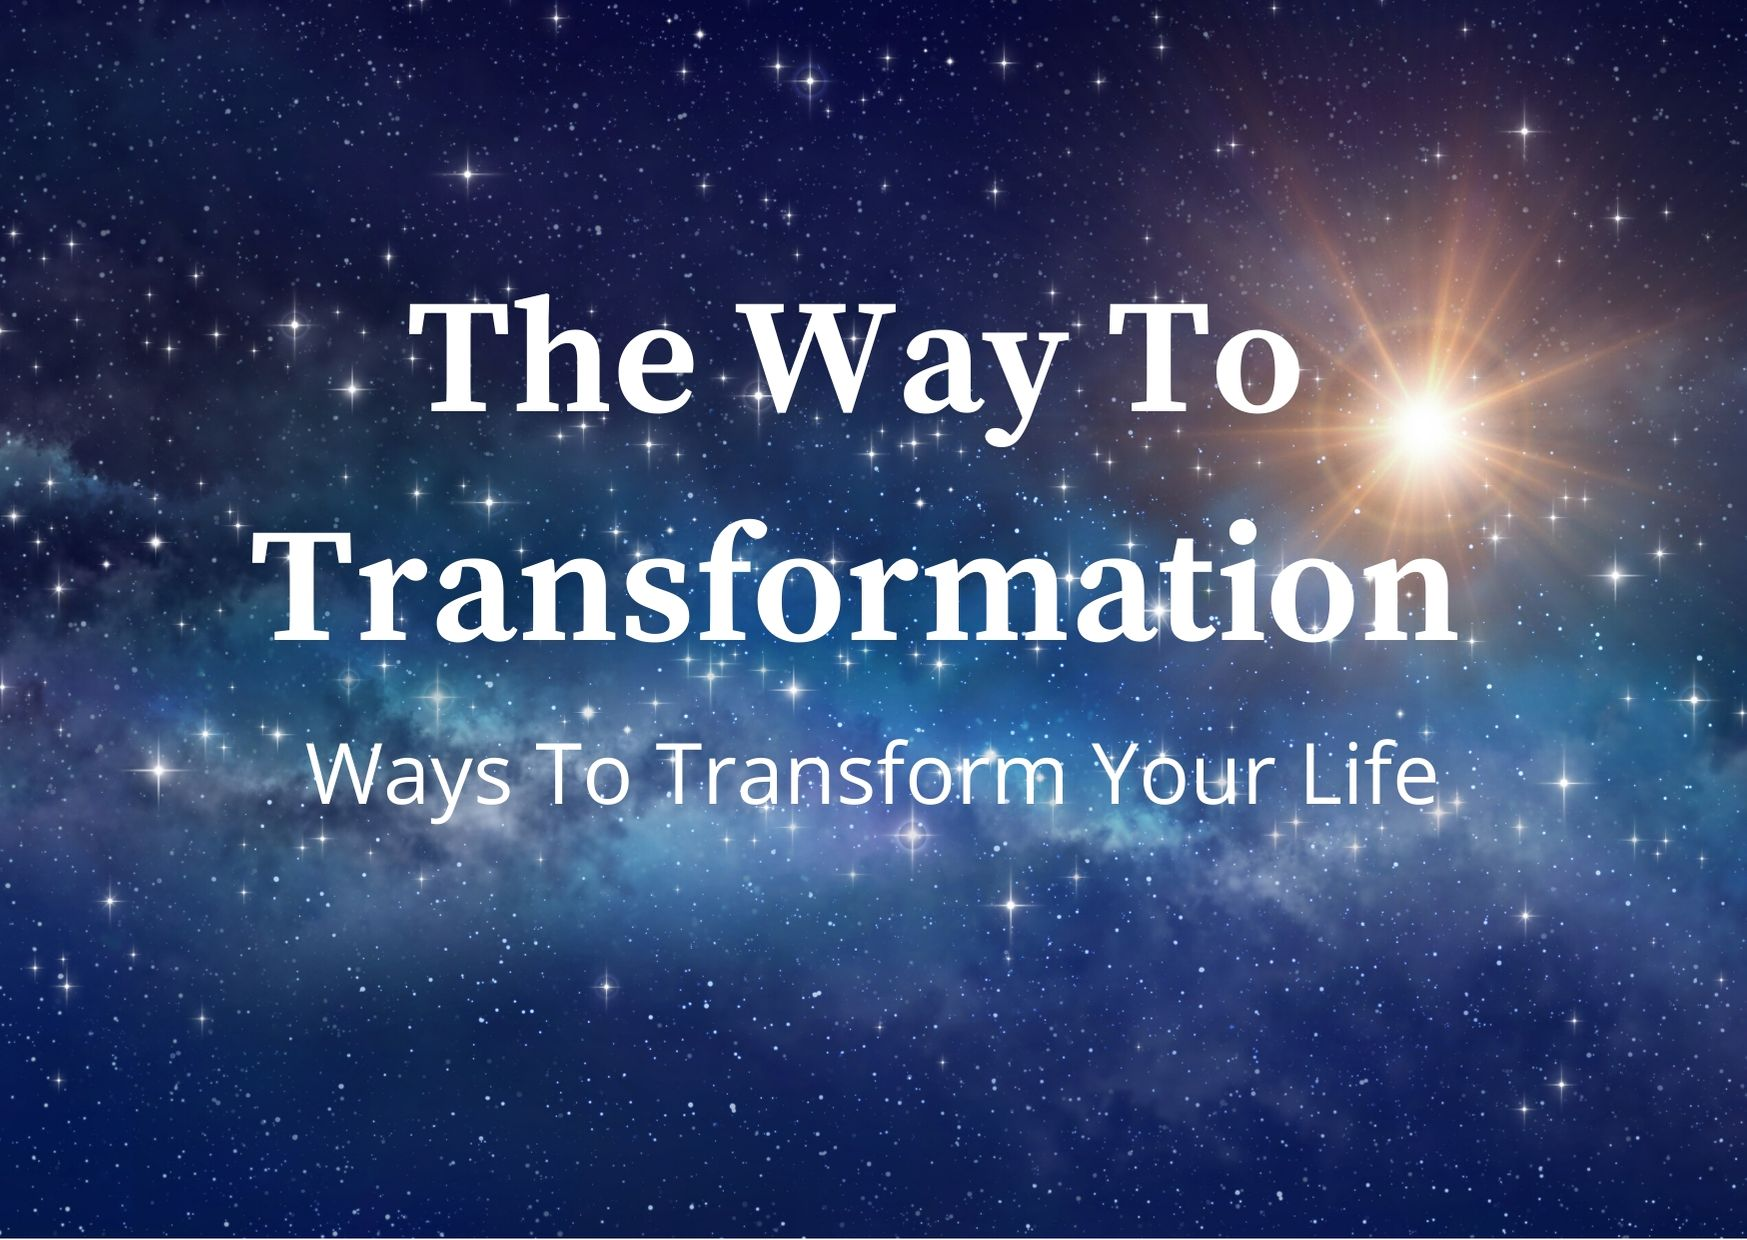 The 1st Powerful Step to Transformation